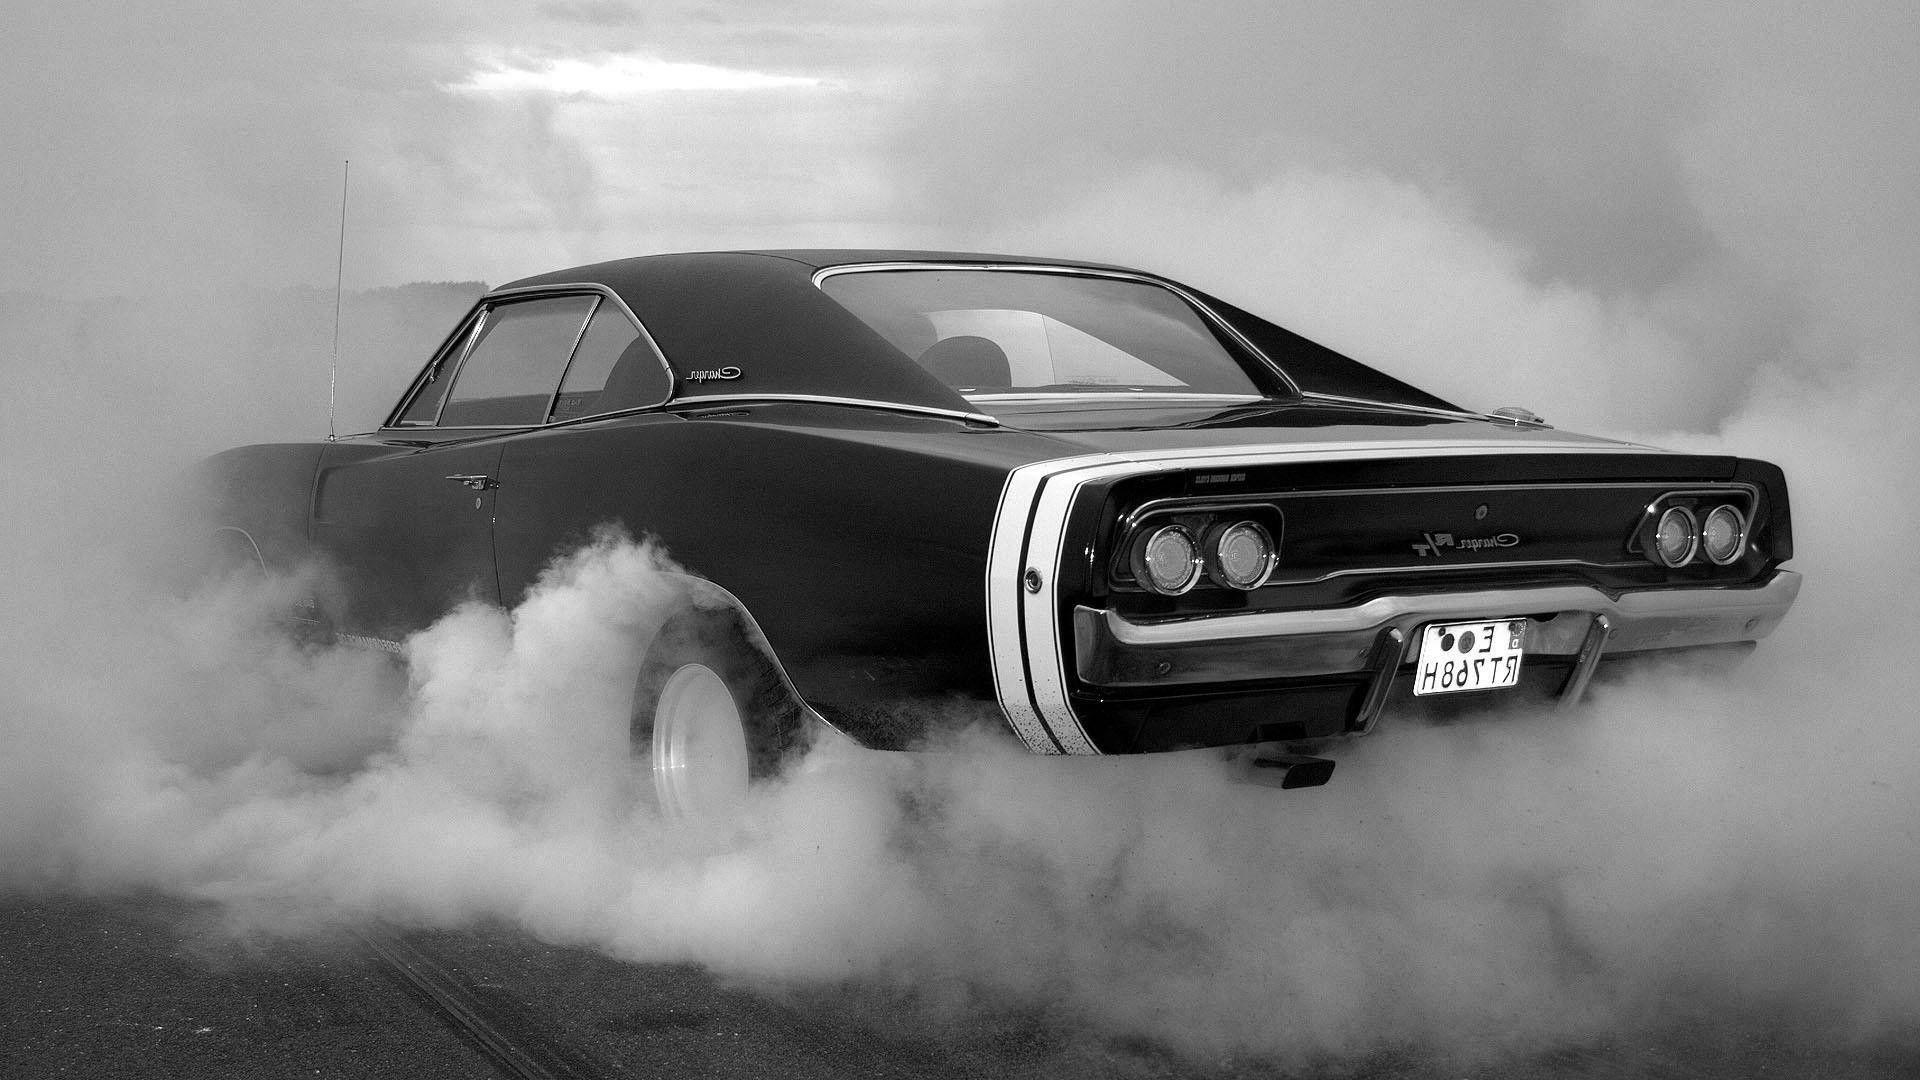 wallpapers of muscle cars wallpaper cave